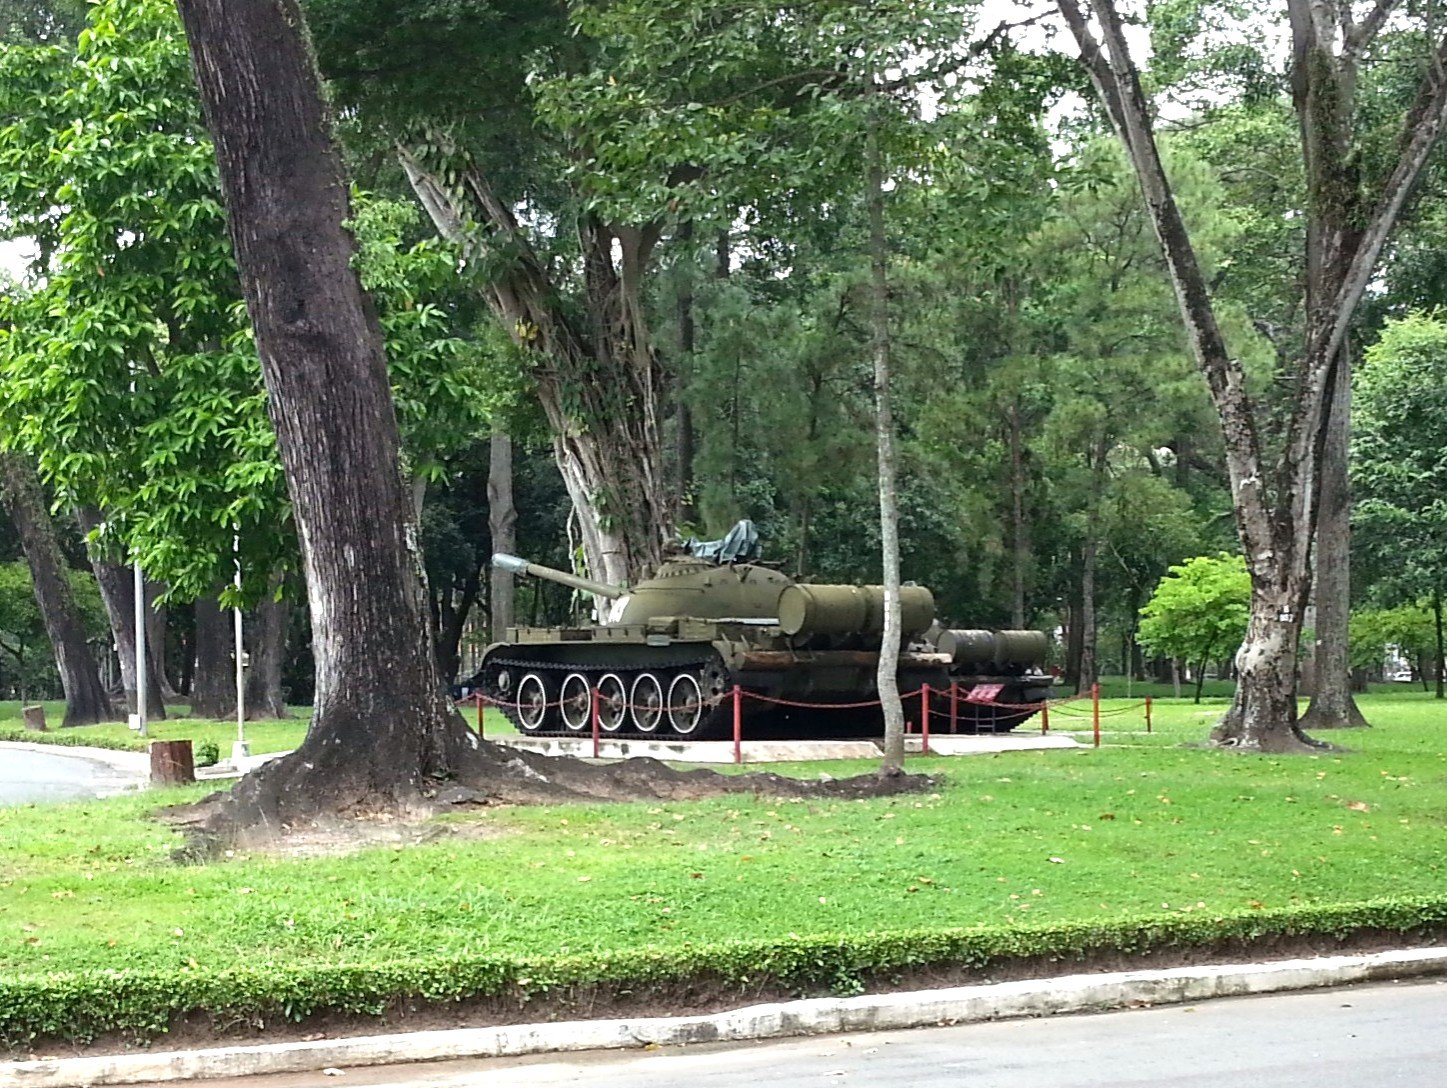 T-54 tank that ended the Vietnam War